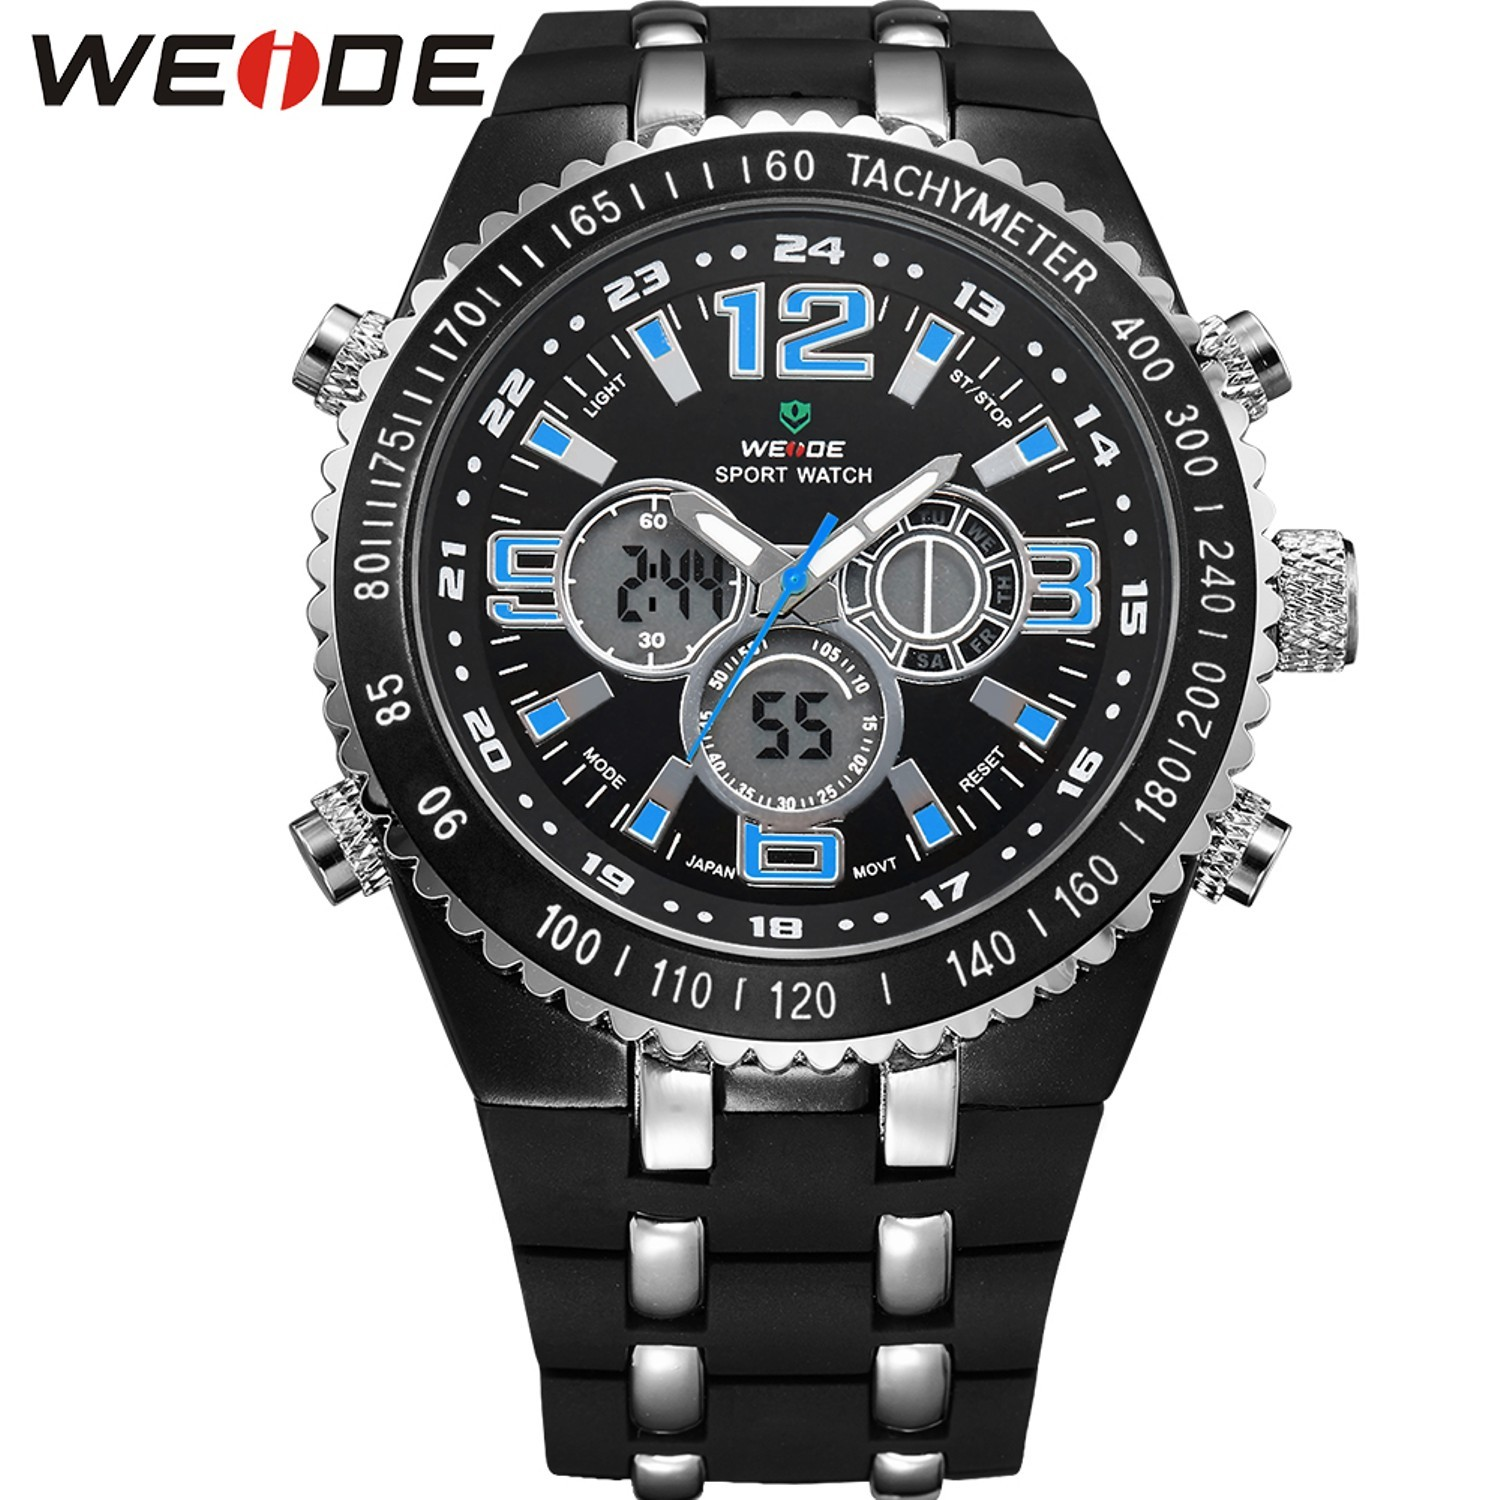 WEIDE-New-Brand-Fashion-Men-Sports-Watches-Men-s-Quartz-LCD-Dual-Movement-Big-Dial-Analog_1500x1500_STRETCH_445.jpg